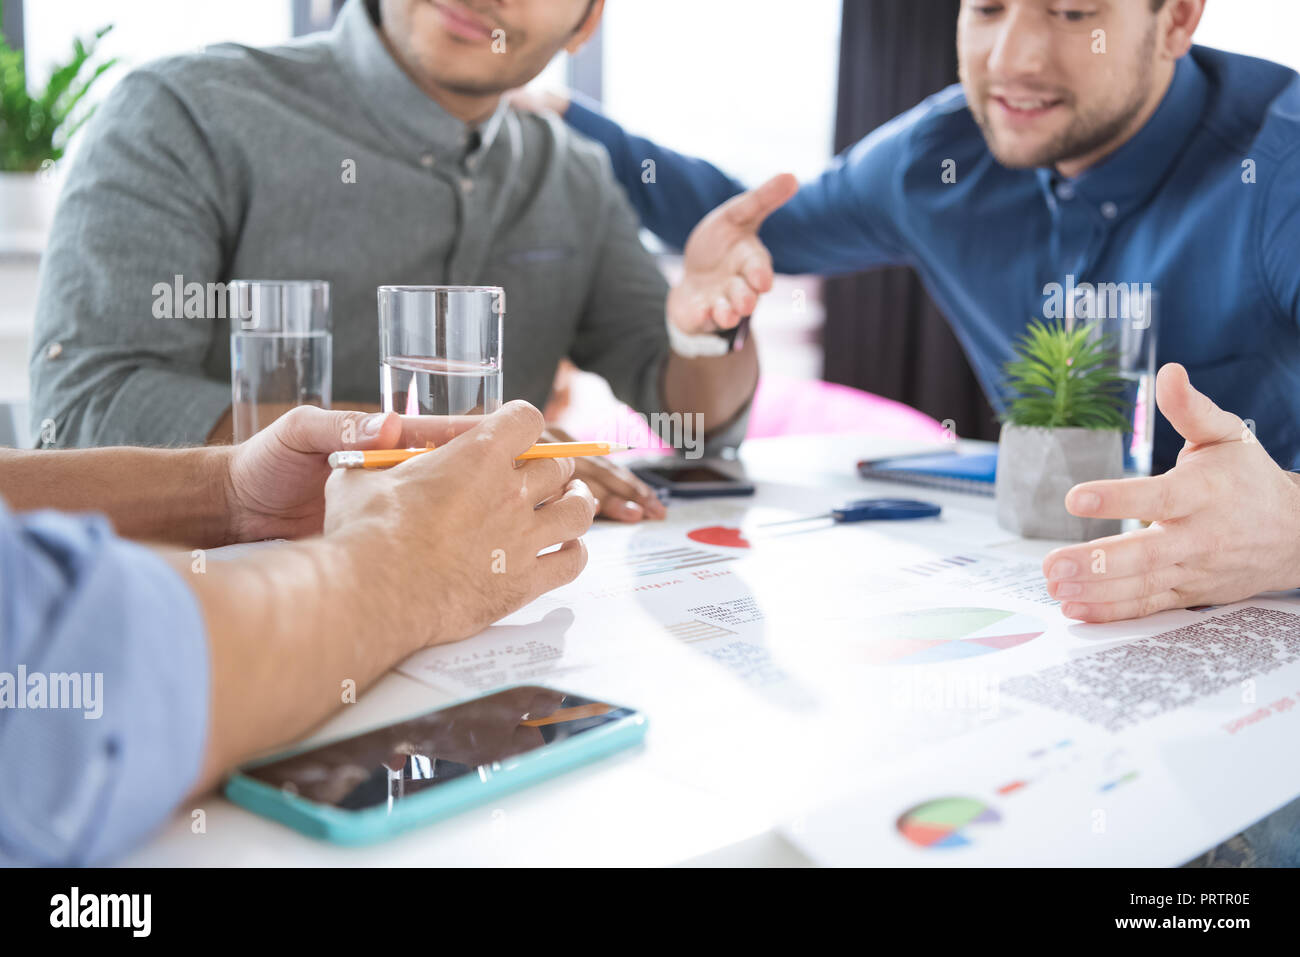 Smiling young businessmen drinking water and discussing new project, business teamwork concept - Stock Image